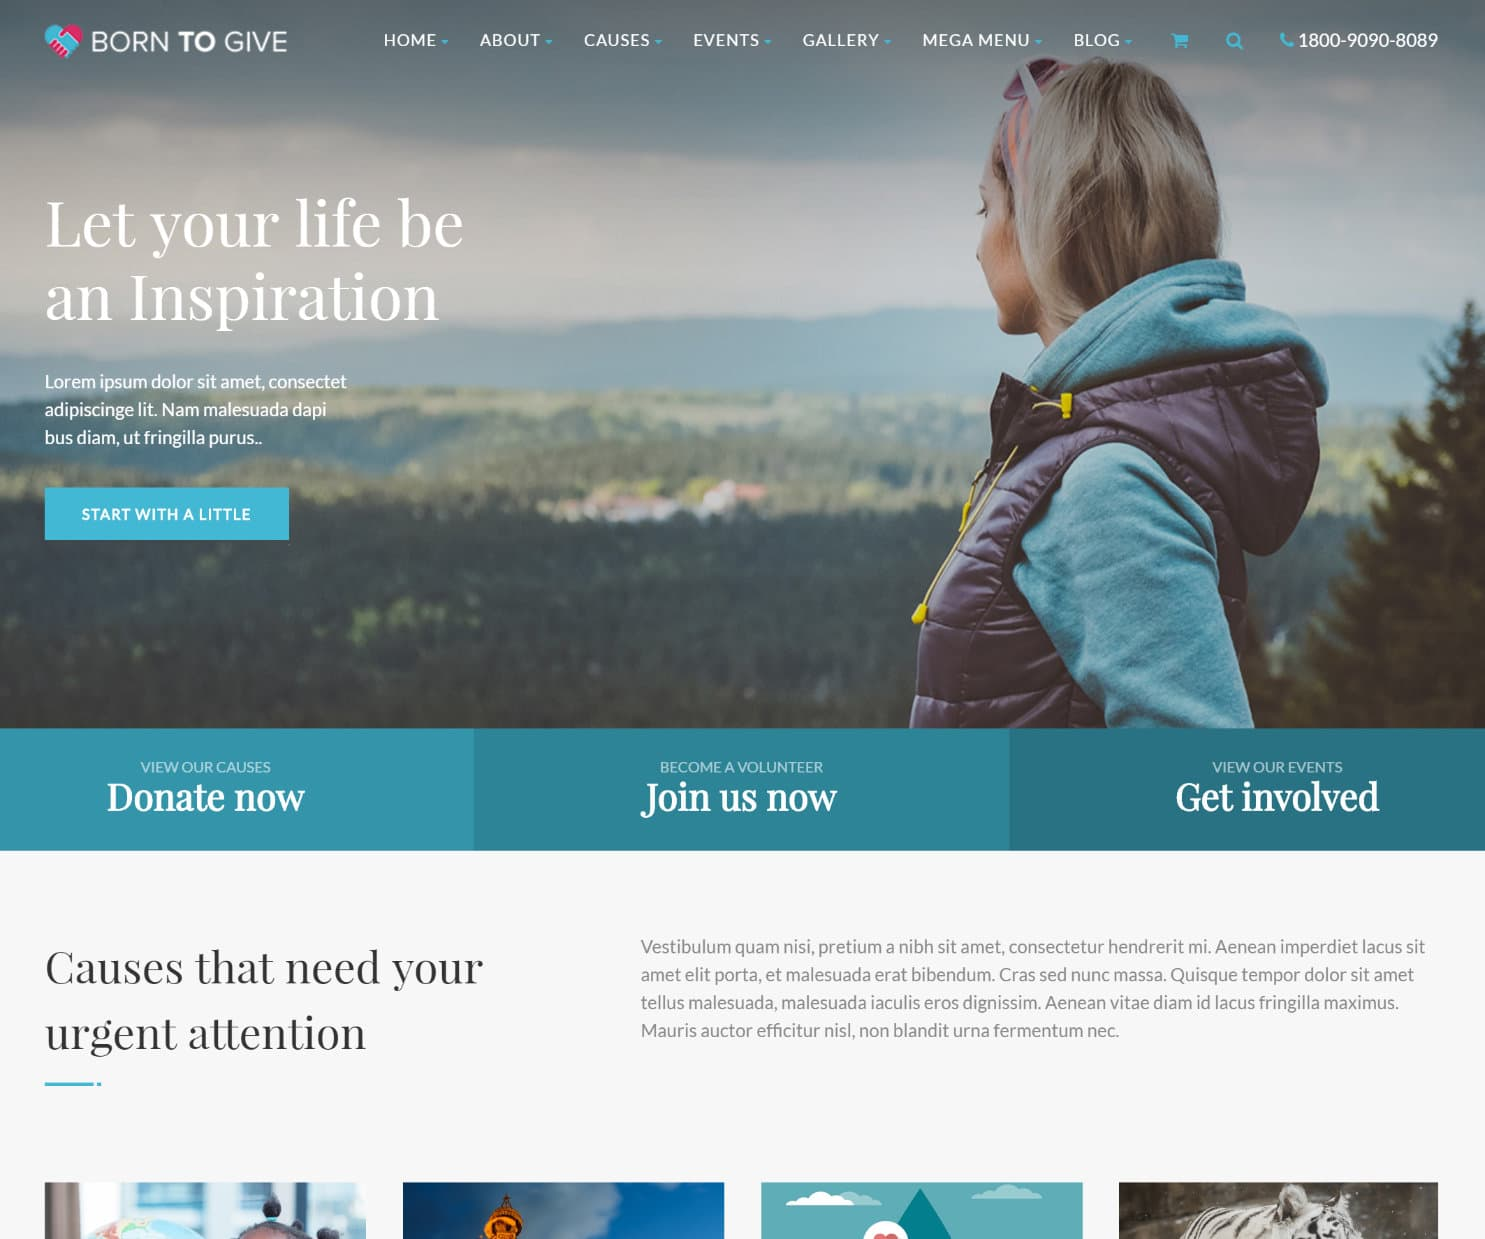 tema de born to give wordpress